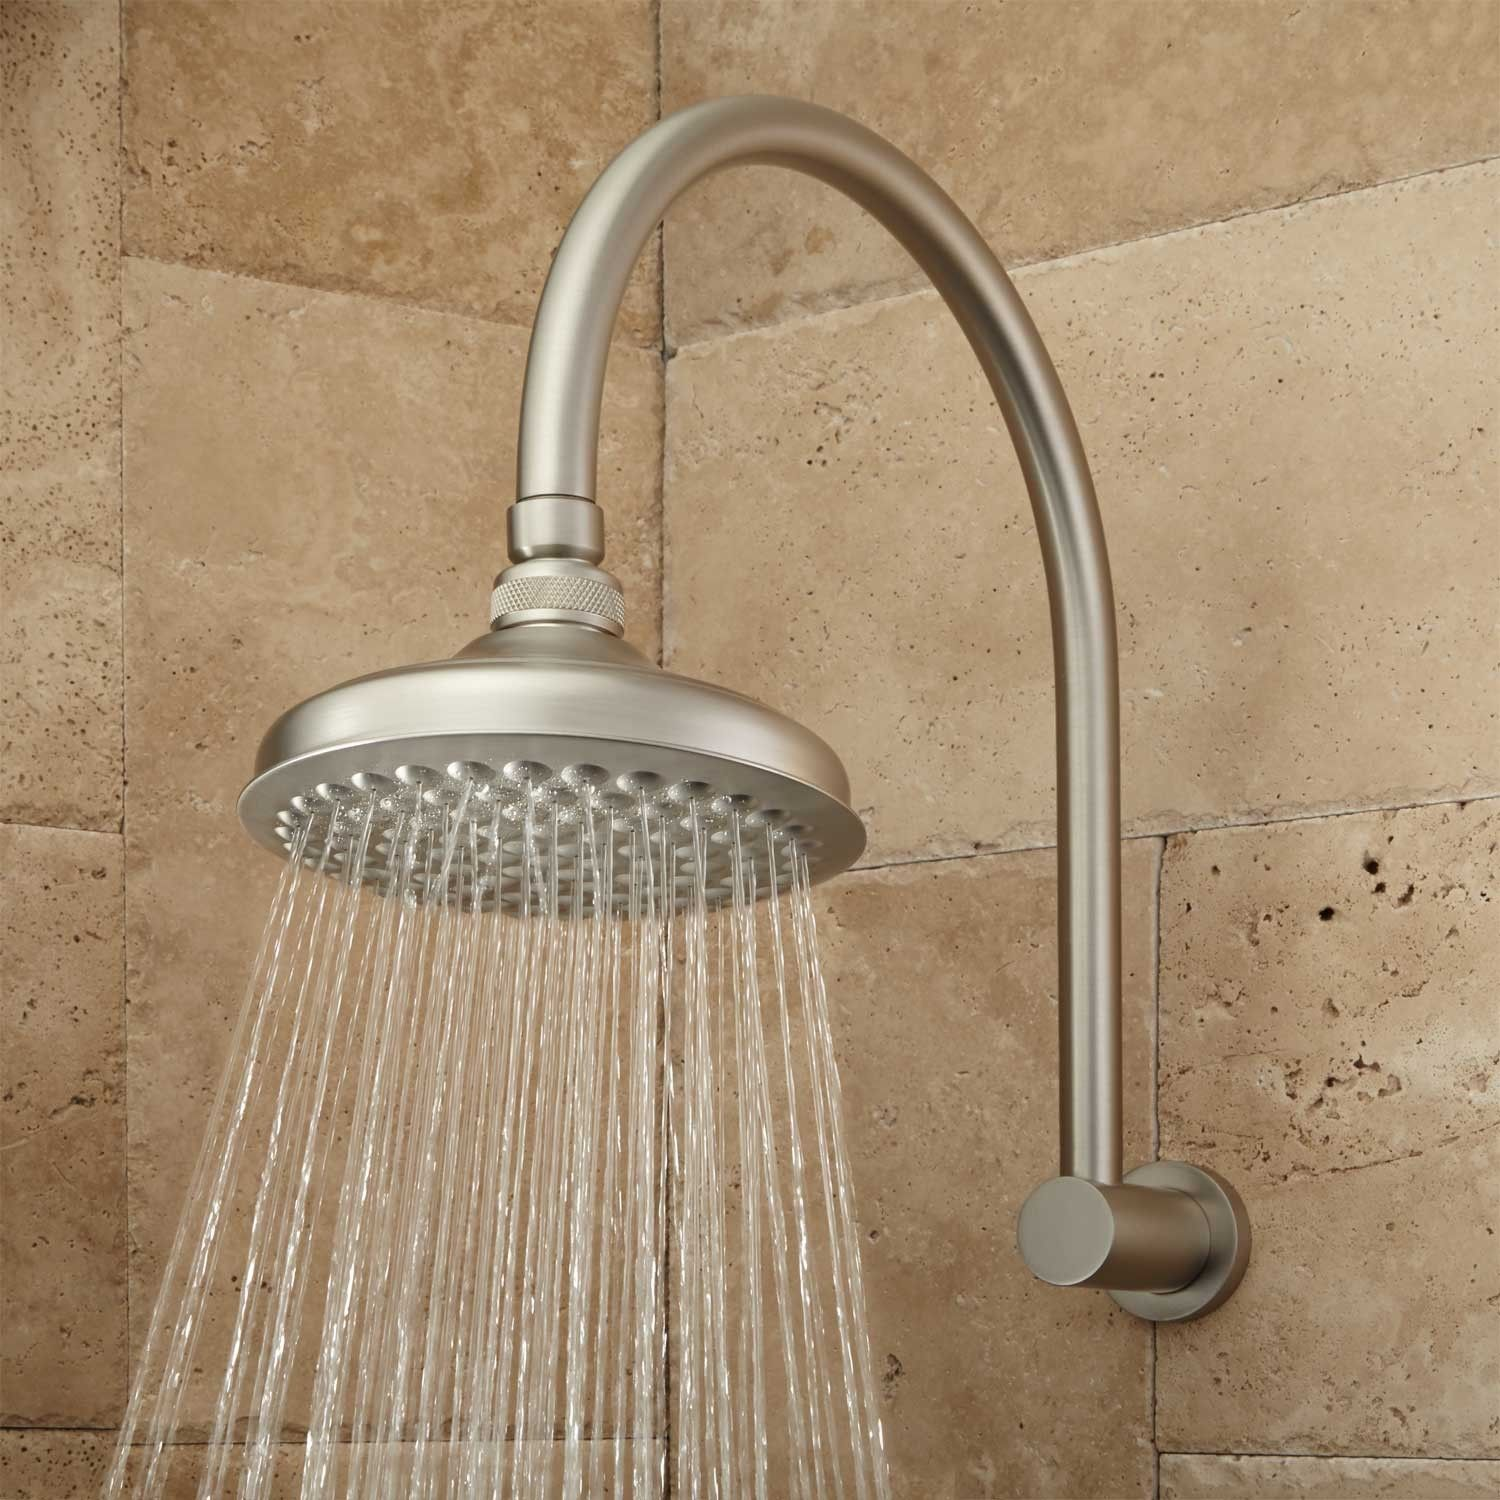 Roux Rainfall Shower Head With Modern Arm Shower Heads Bathroom